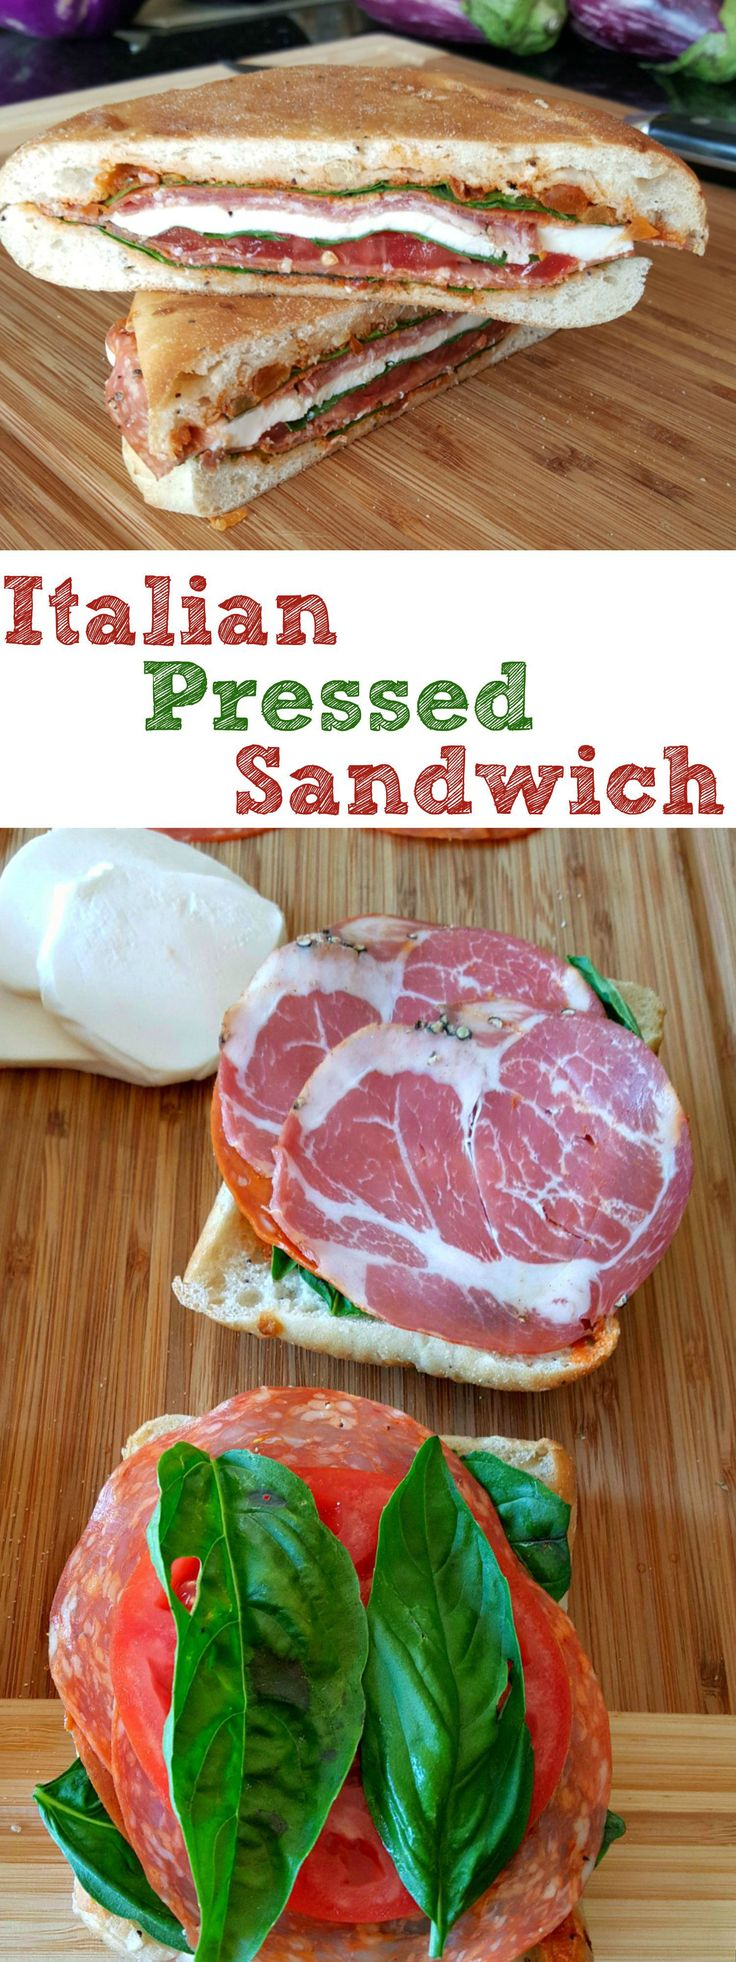 Blue apron bayonne - Whip Up Some Delicious Weekdaysupper Italian Pressed Sandwiches Then Kick Back With Some Iced Tea